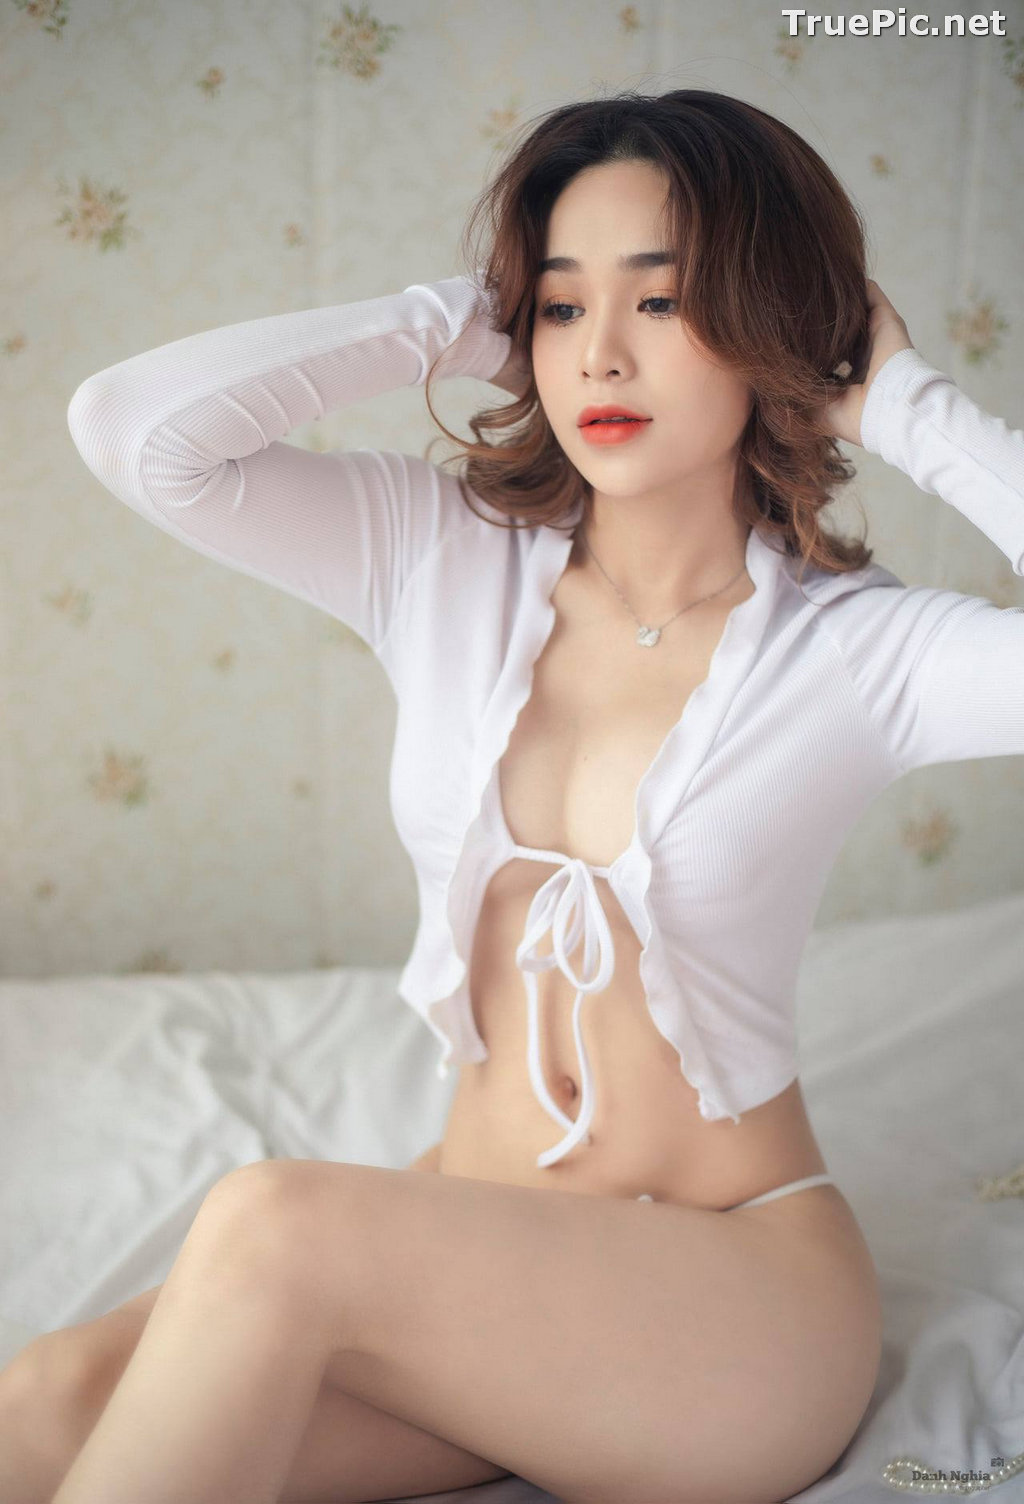 Image Vietnamese Sexy Model - Beautiful Body Curves - TruePic.net - Picture-6